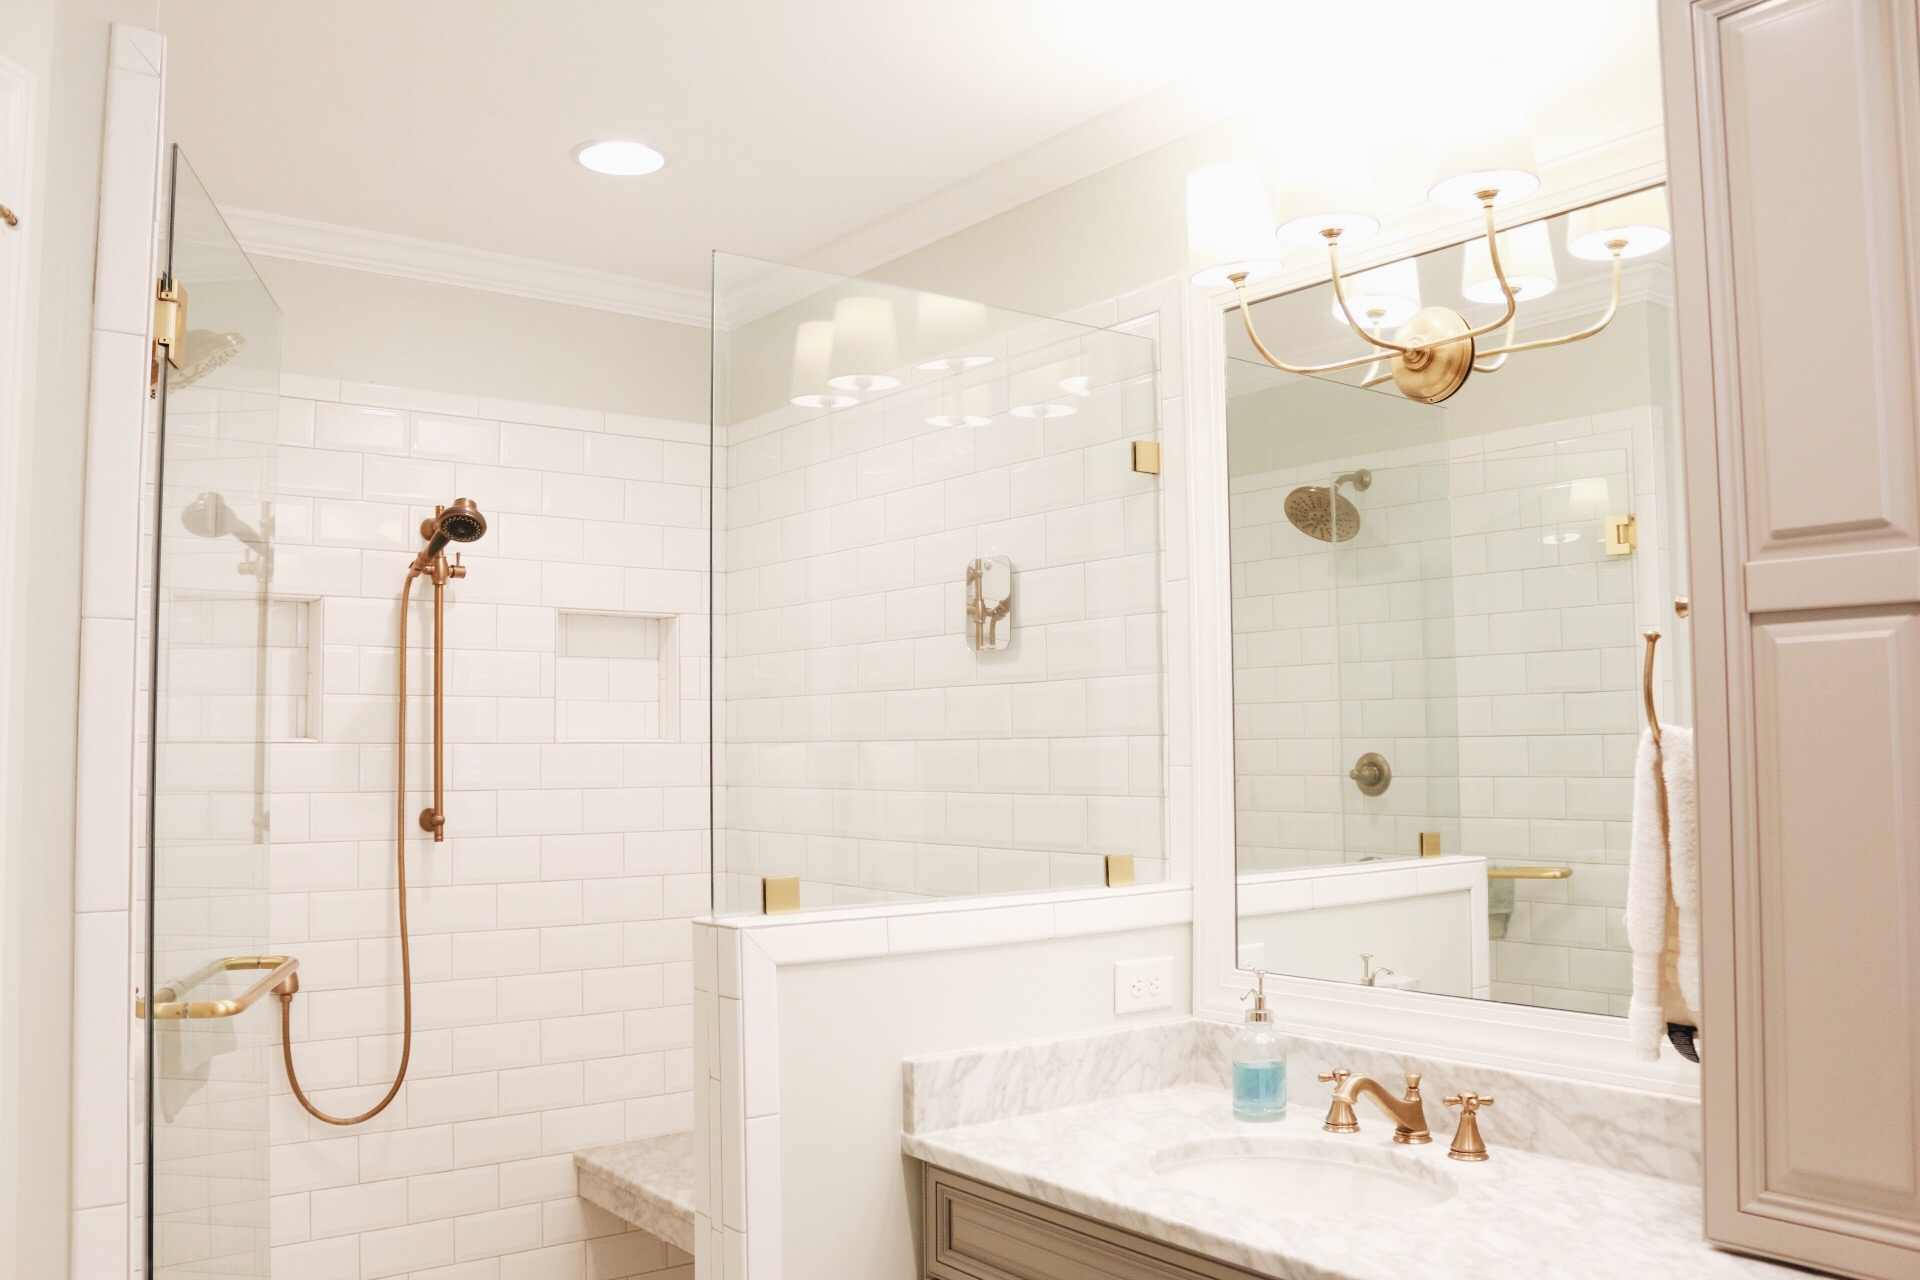 Lauren_Tilley_Interiors_bath_marble_shower_master_bath.jpeg